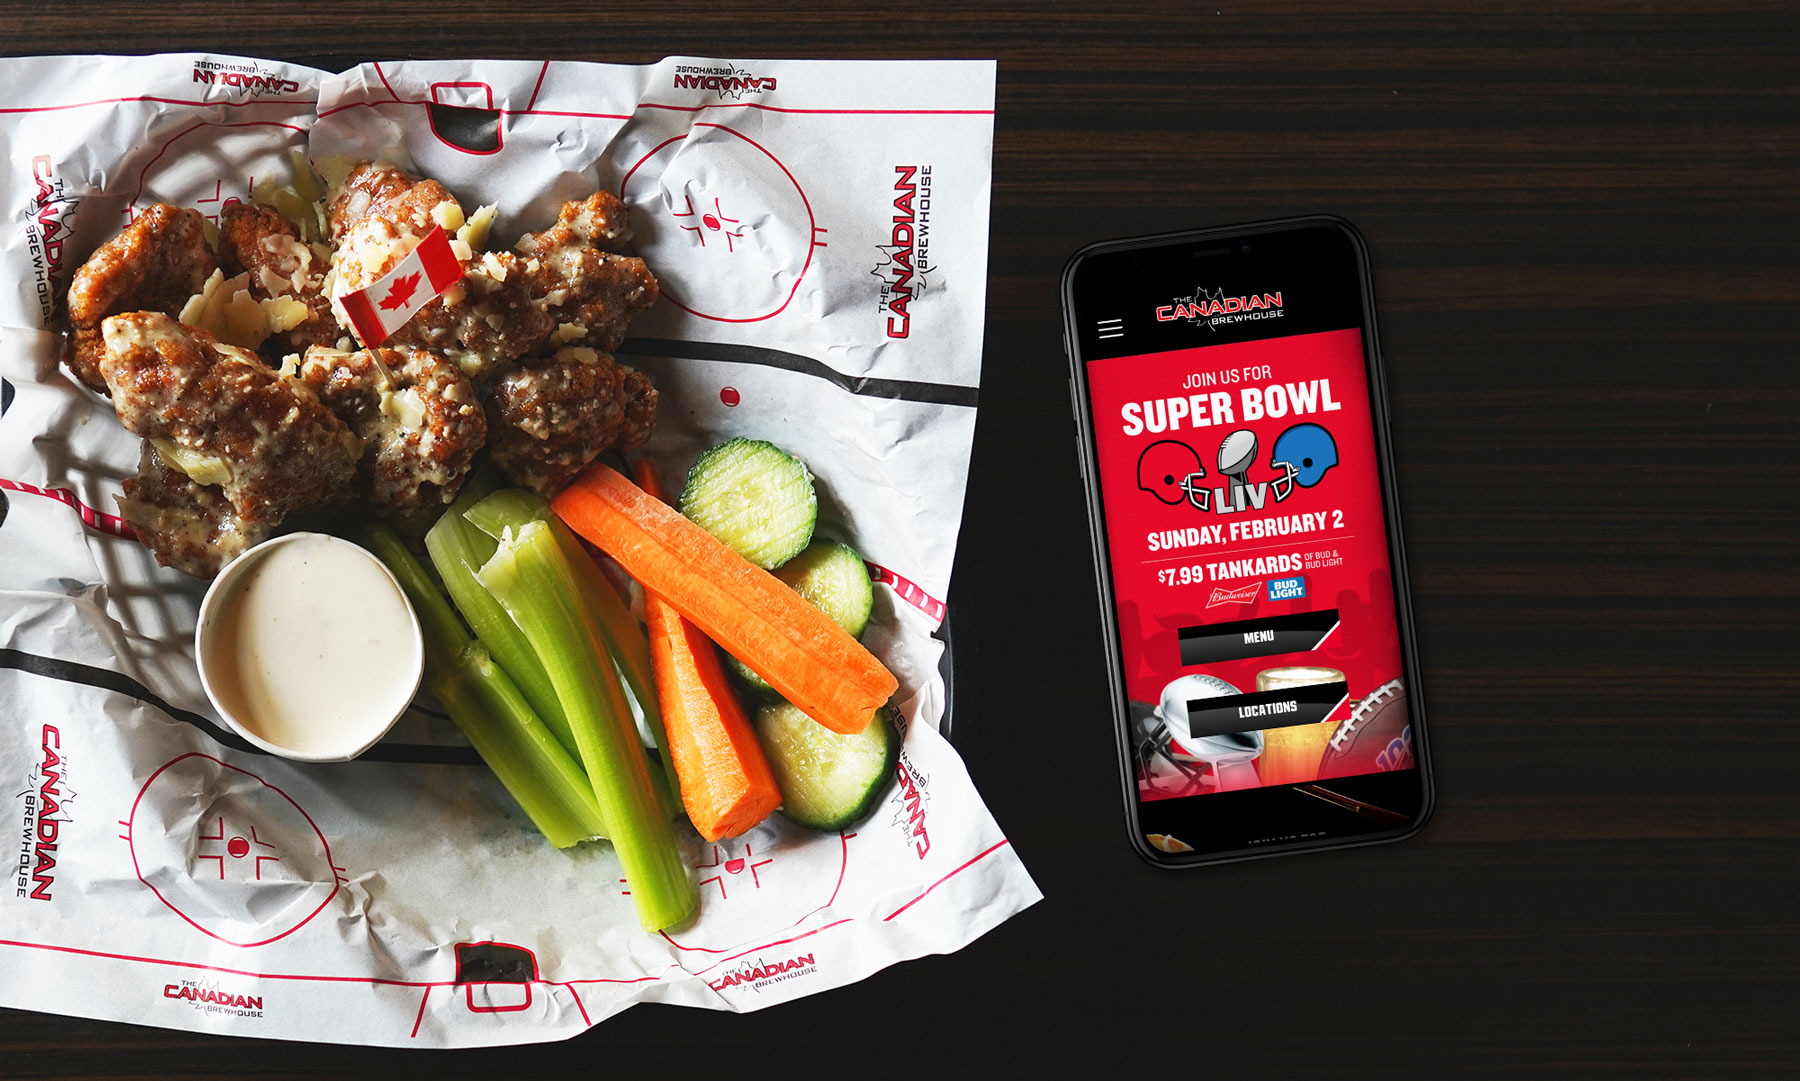 Super Bowl banner on The Canadian Brewhouse Website iPhone Rendering.